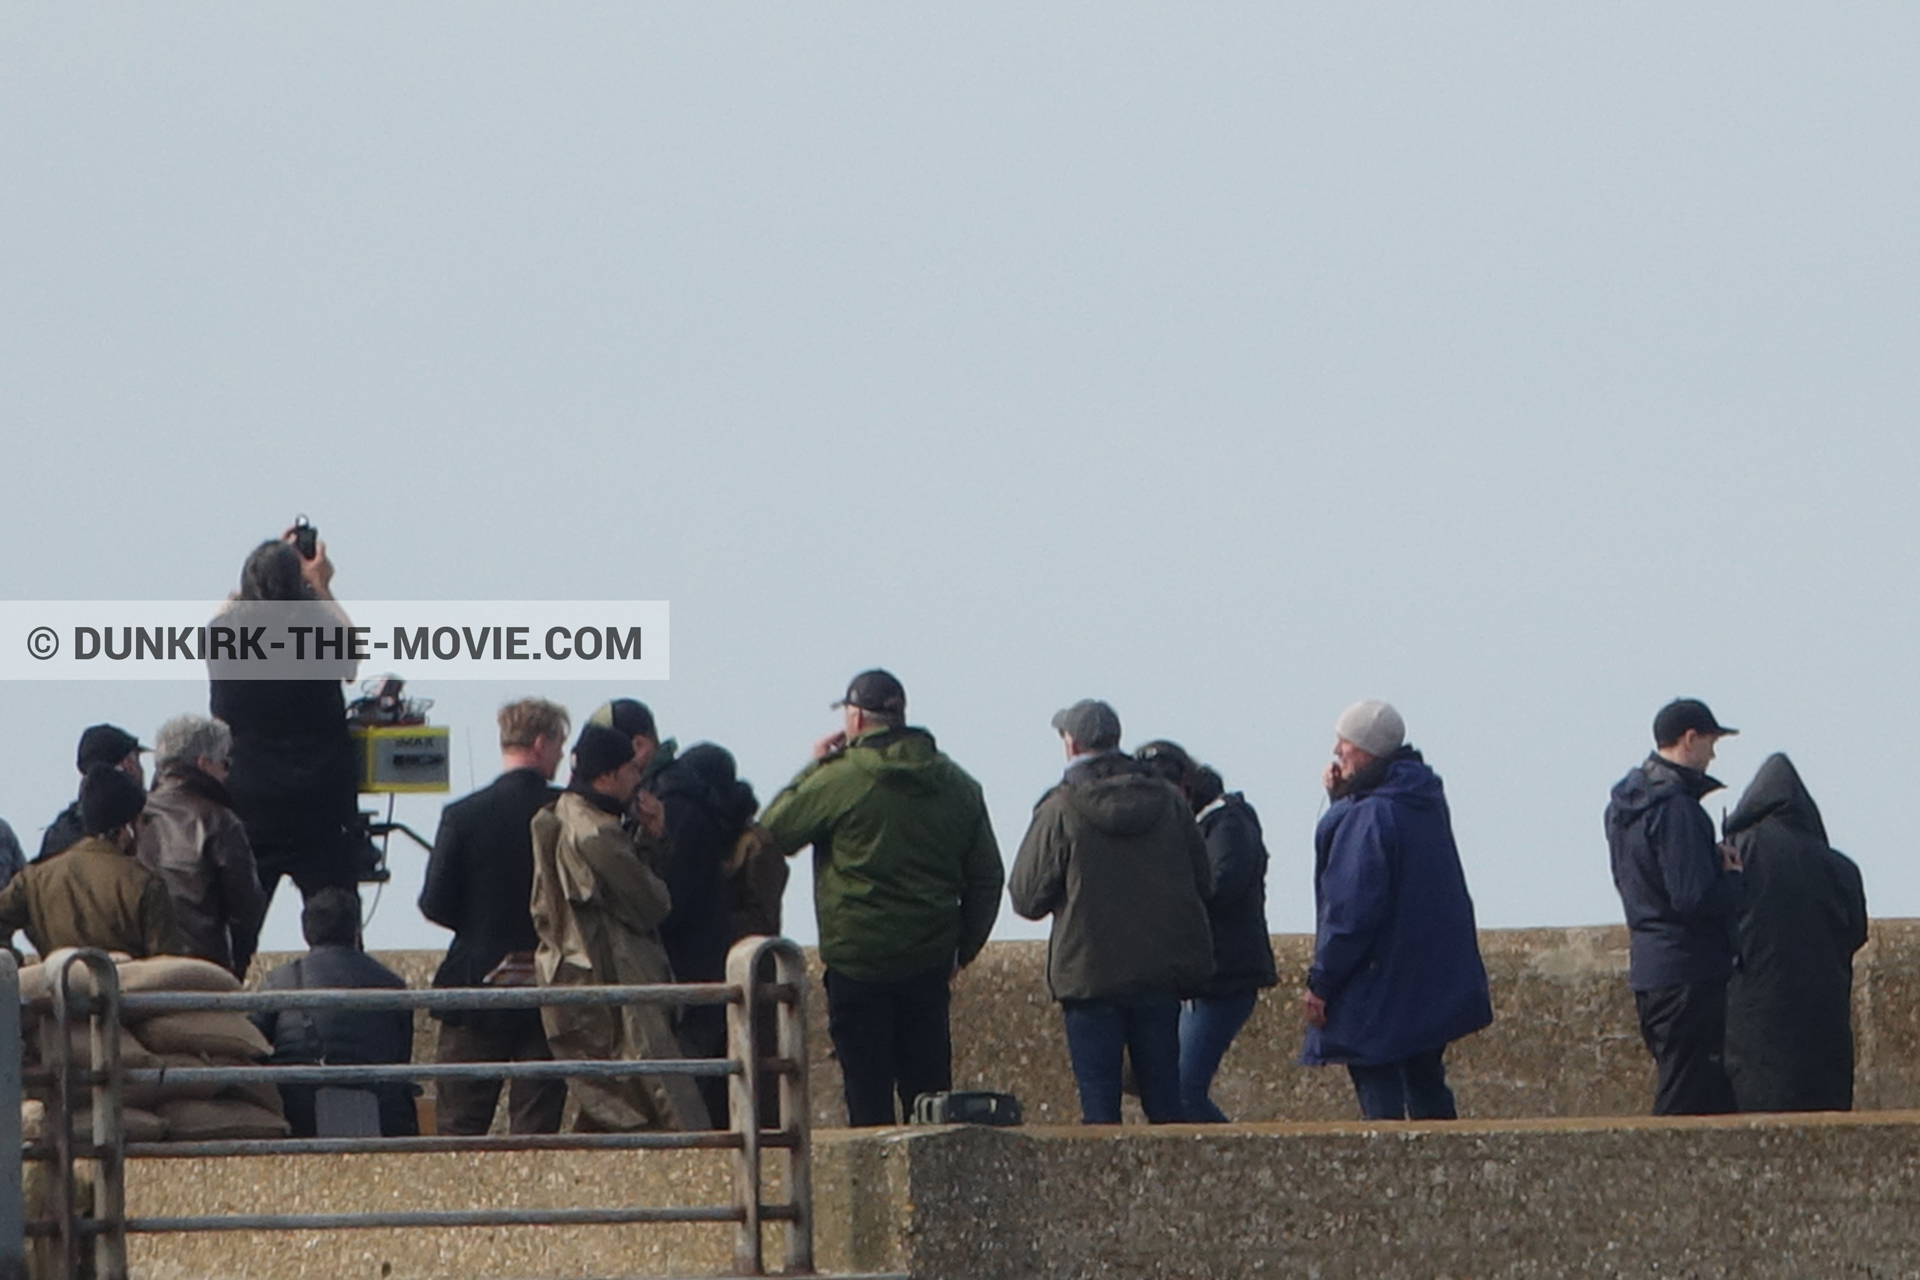 Picture with IMAX camera, supernumeraries, EST pier, Christopher Nolan, Nilo Otero,  from behind the scene of the Dunkirk movie by Nolan